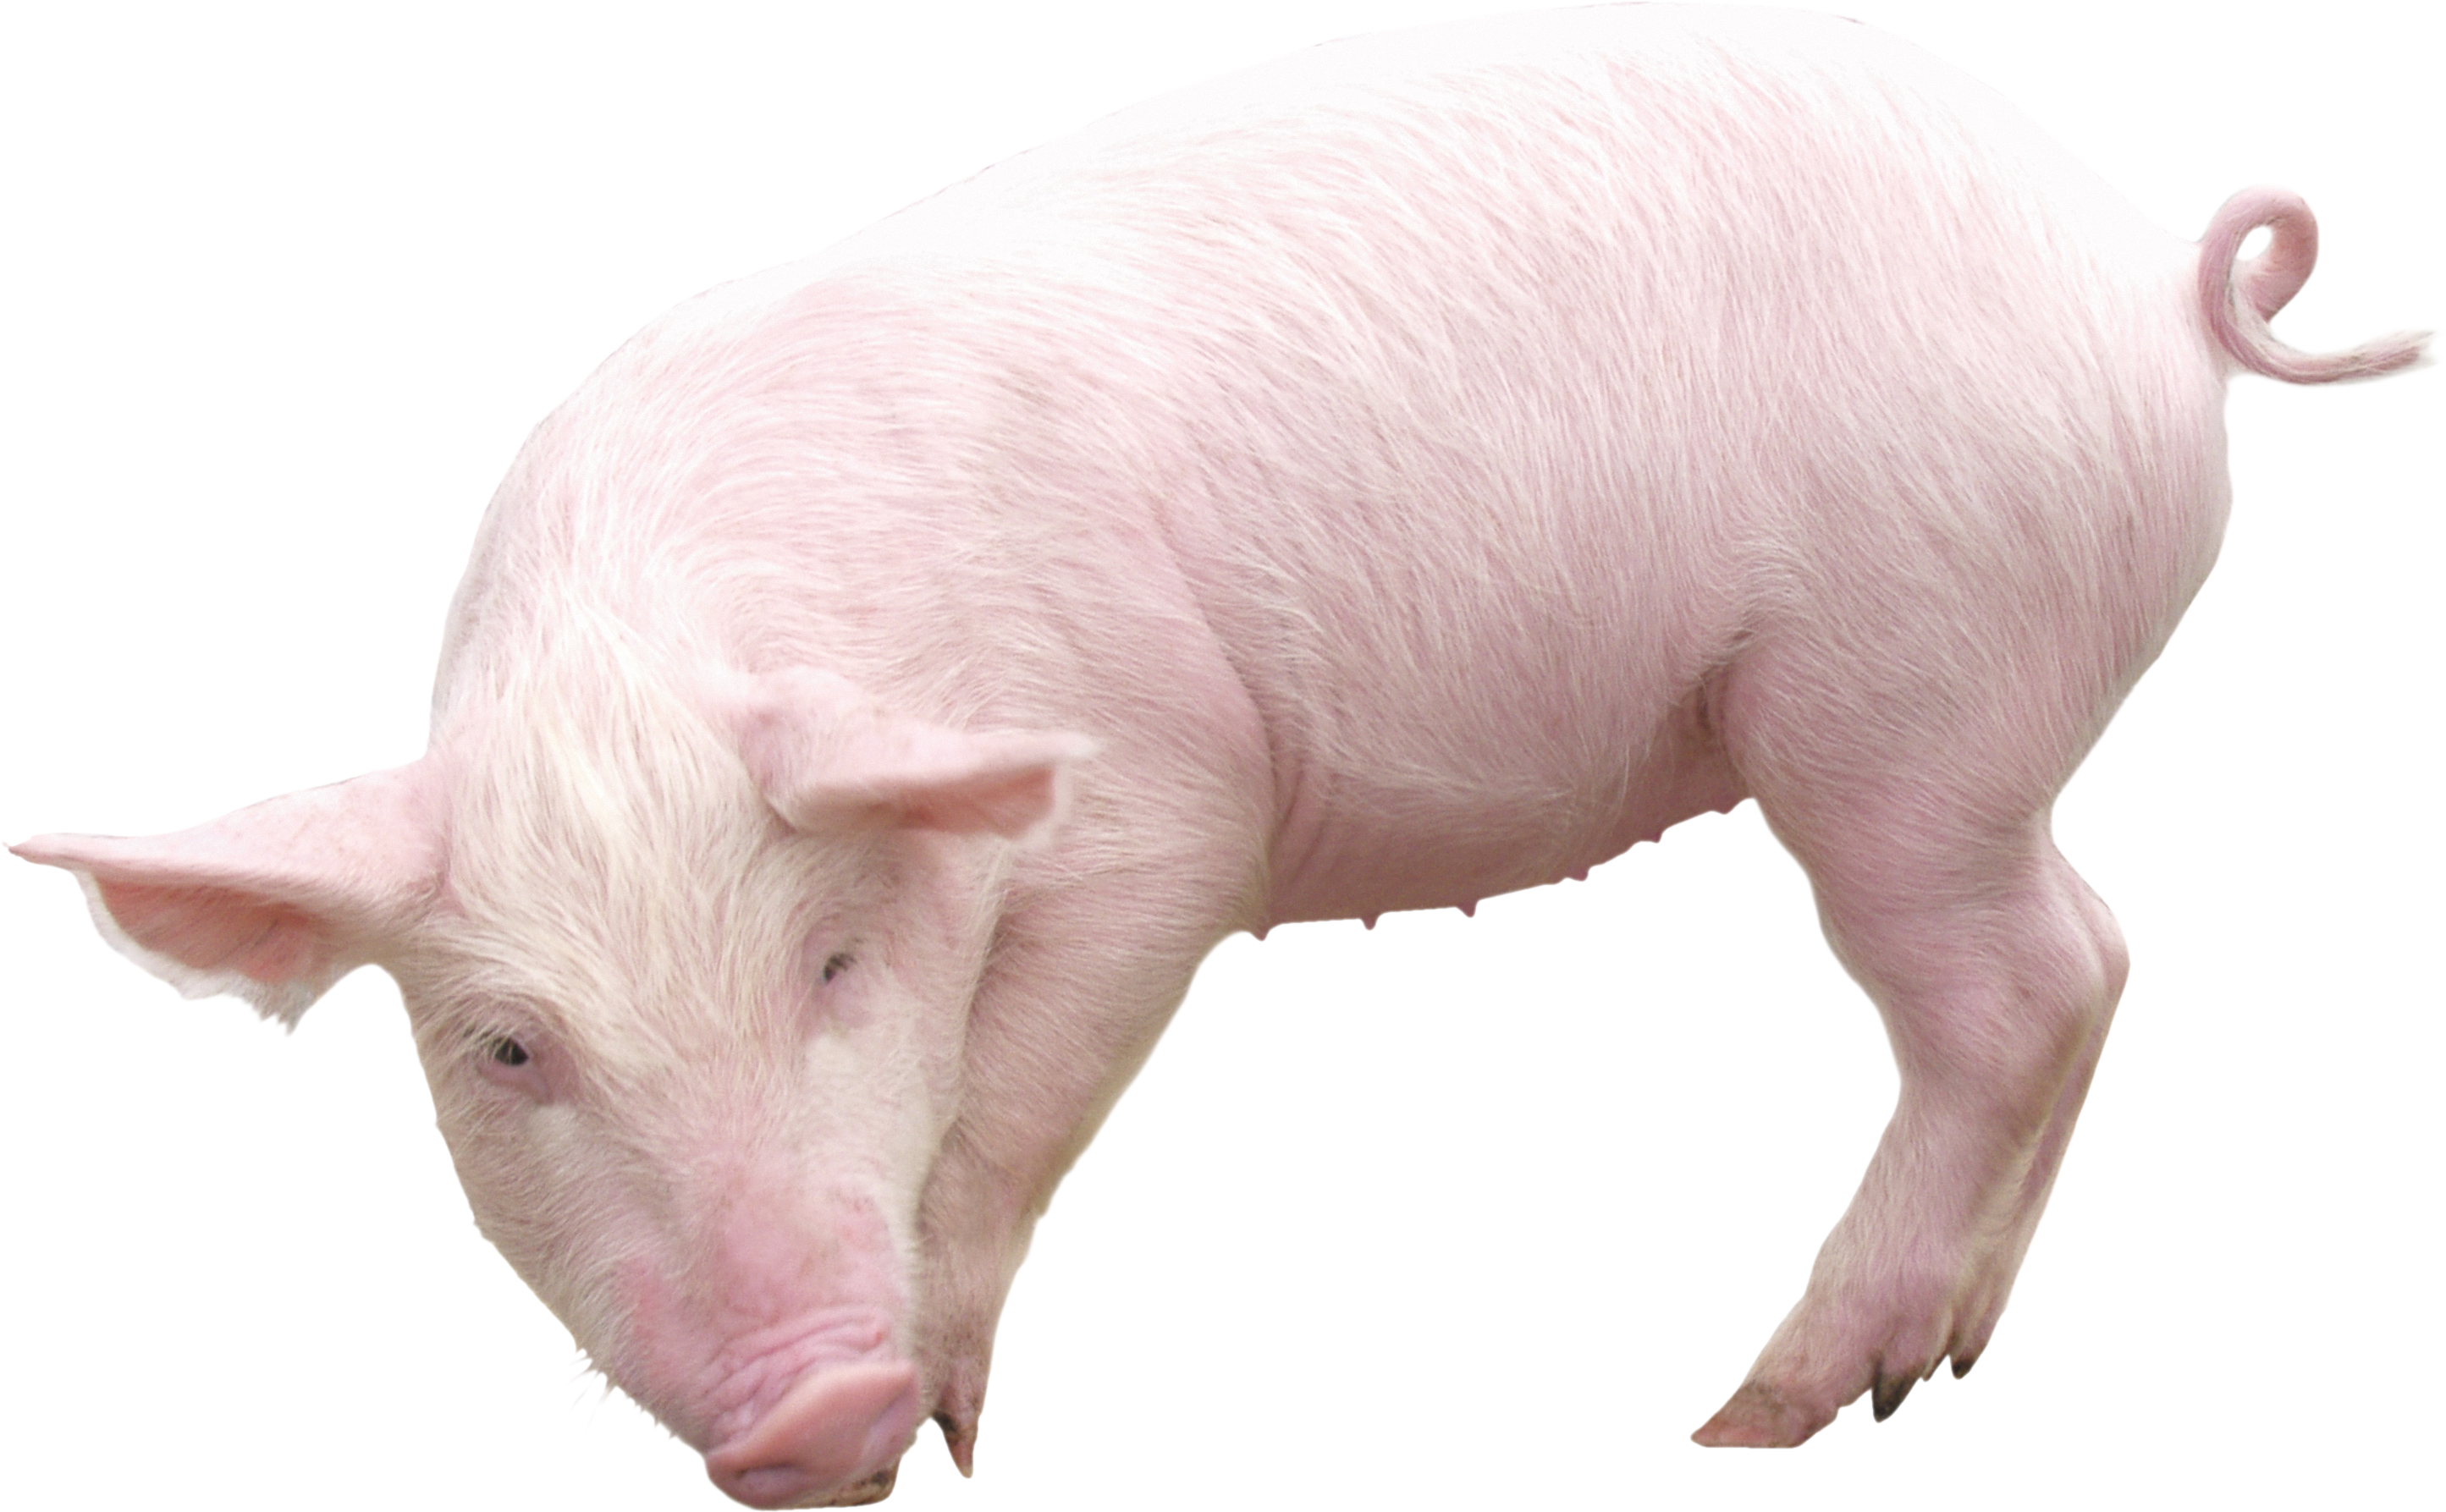 Pig png images free. Pigs clipart transparent background